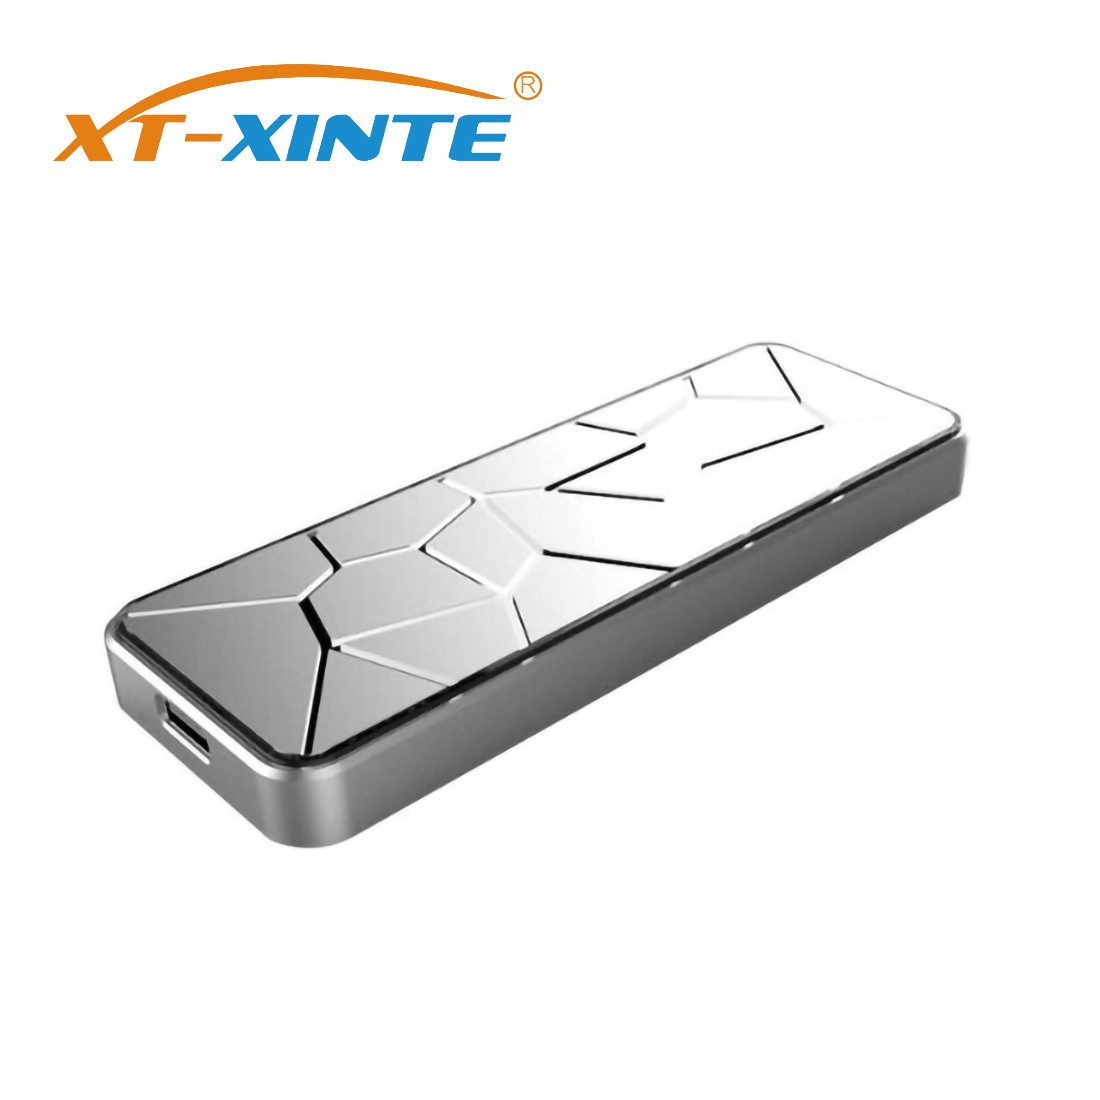 XT-XINTE SSD Enclosure USB 3.1 To M.2 NVME PCIe / M2 M-Key SATA To Type C Adapter Card Mobile Hard Disk For NGFF SATA SSD